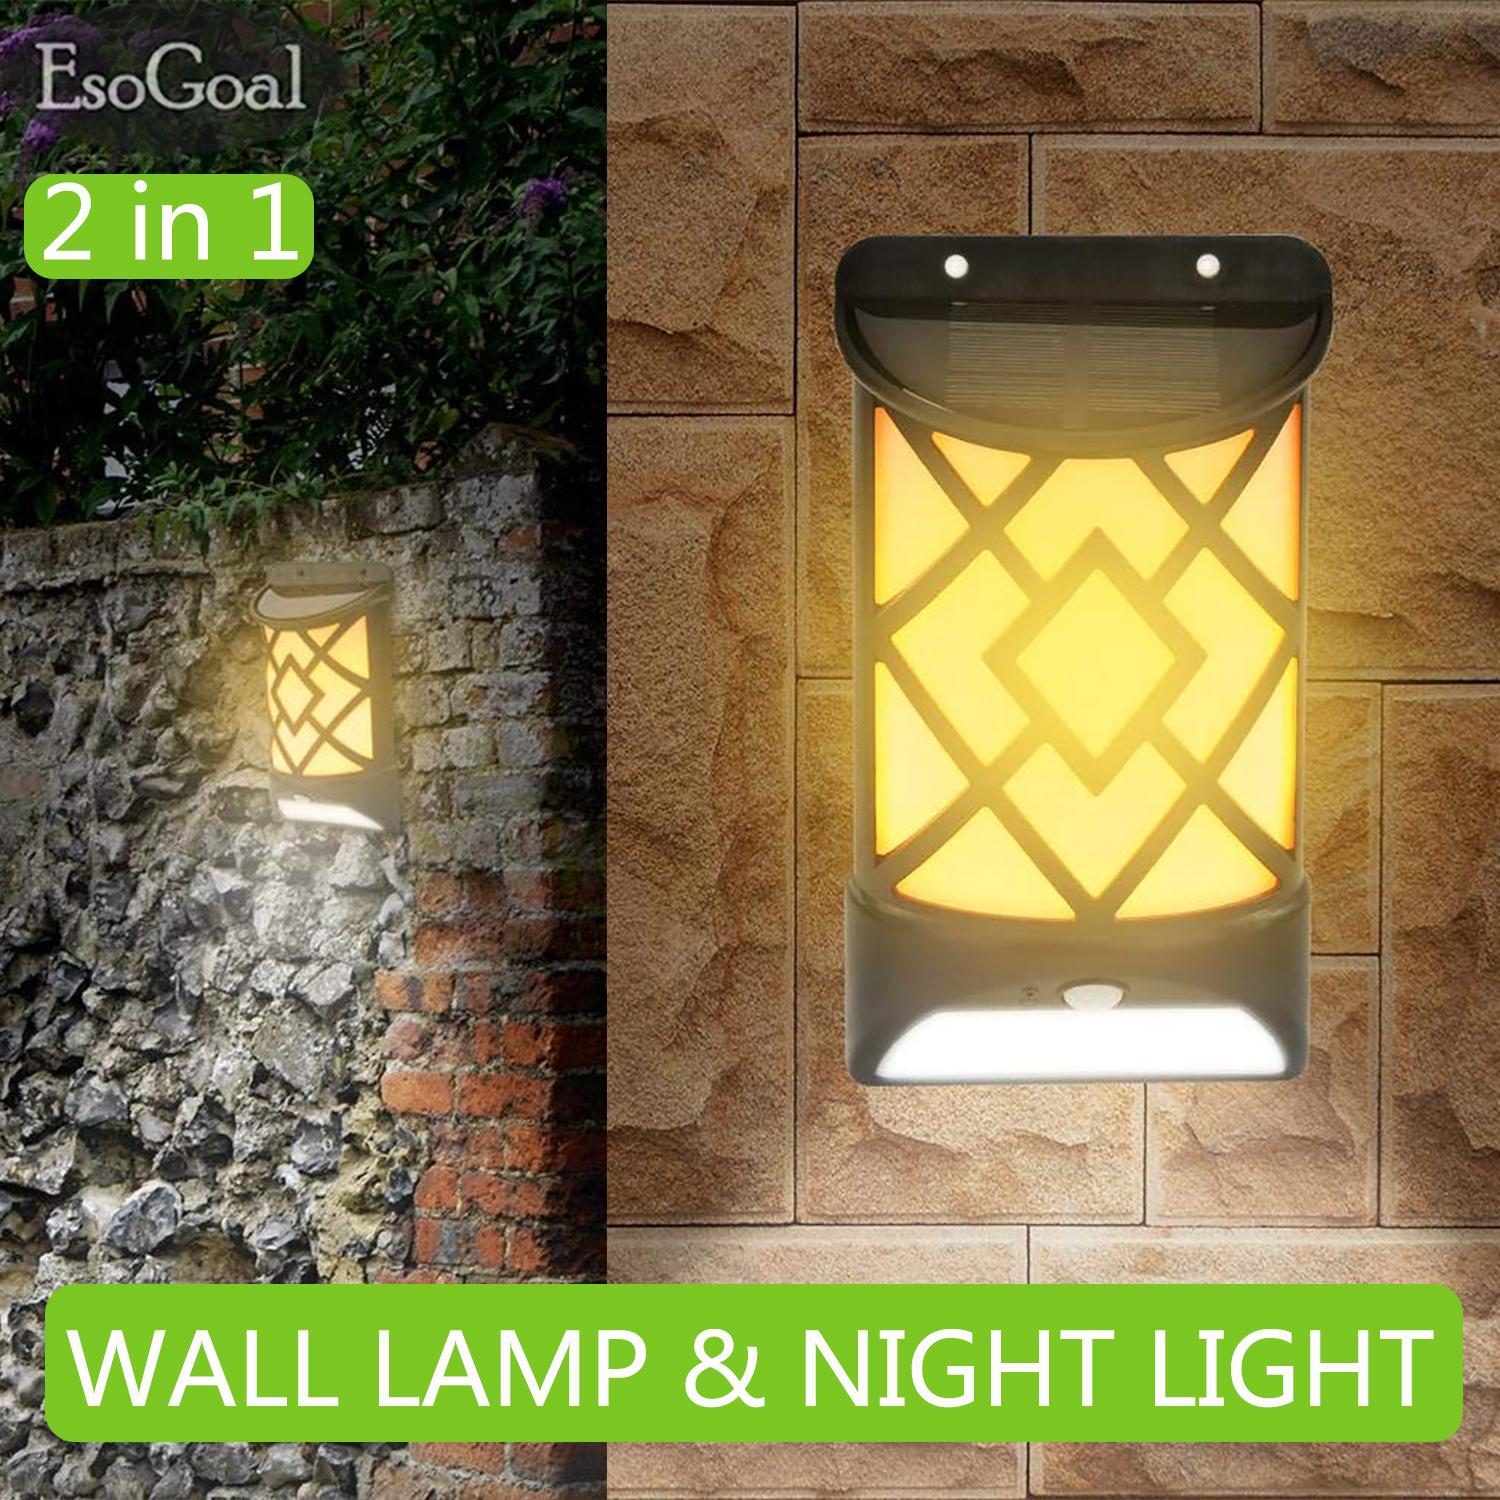 Lights For Sale Lighting Prices Brands Review In Philippines Schematic Diagram Of An Electric Bulb Below The First Esogoal 2 1 Solar Sensor Wall Flame Outdoor Flickering Lamp Waterproof